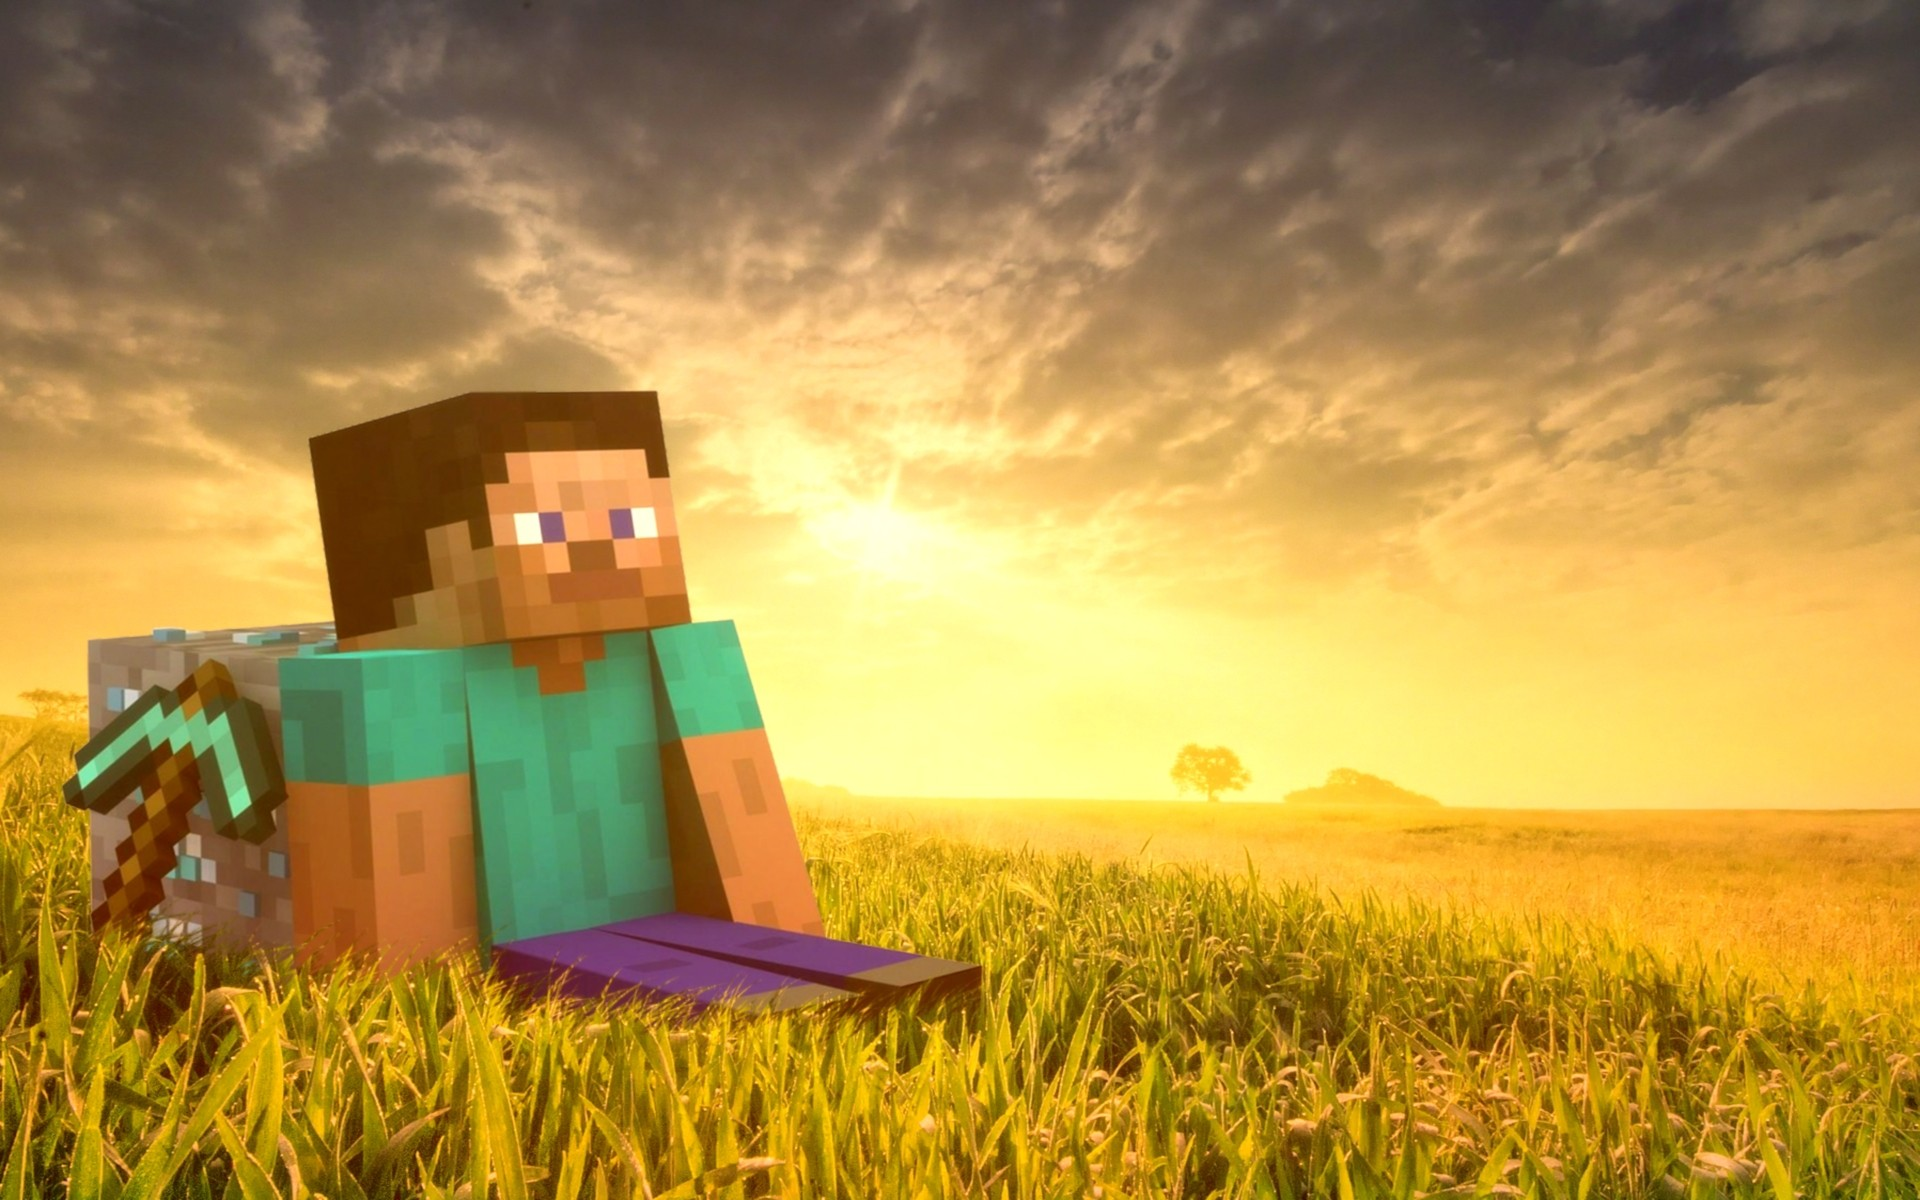 fondos-de-pantalla-de-minecraft-Steve-Minecraft-Wallpapers-HD-Wallpaper